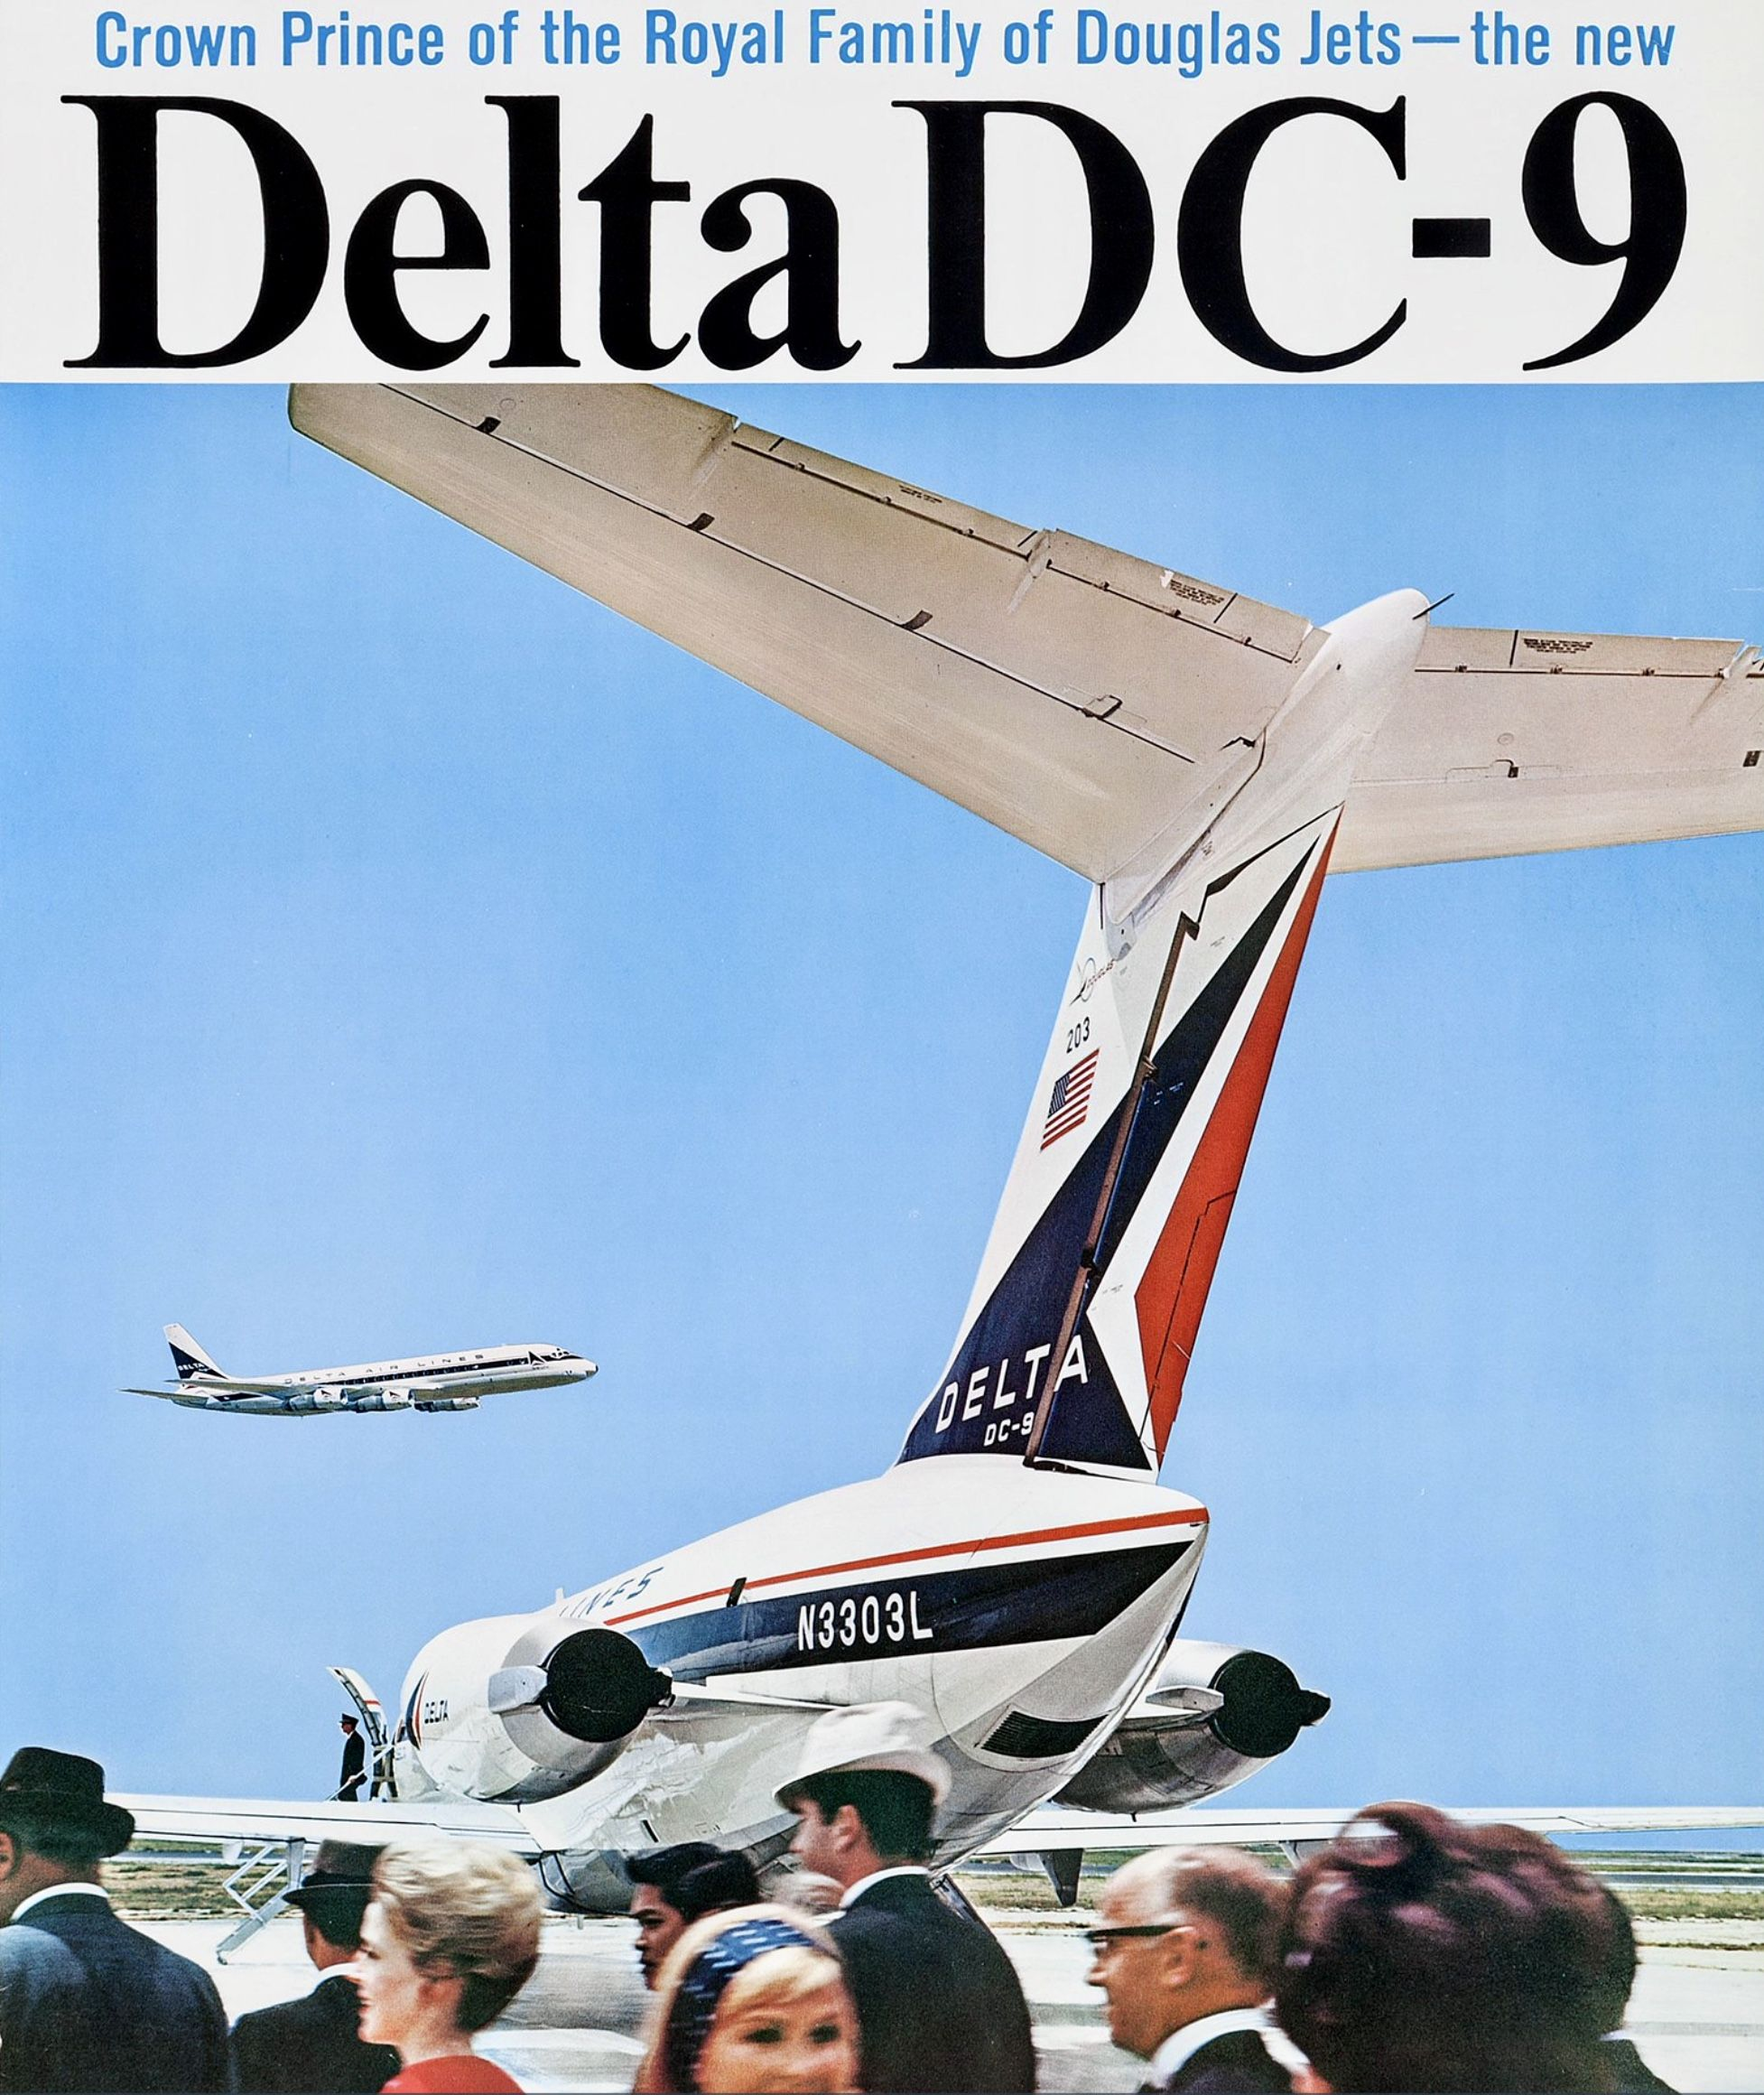 Pin by Forrest Spears on Delta Memories in 2020 Vintage